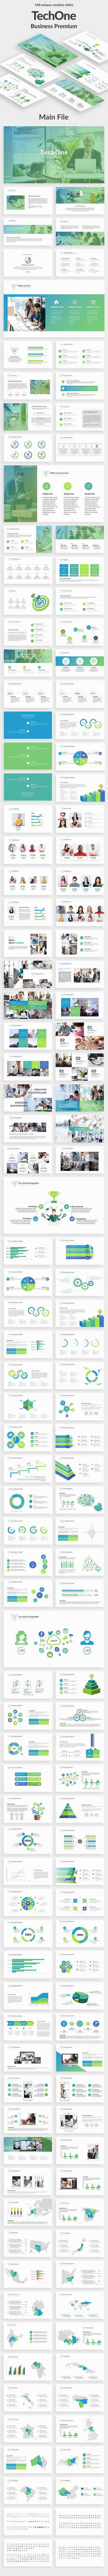 TechOne Business Google Slide Template